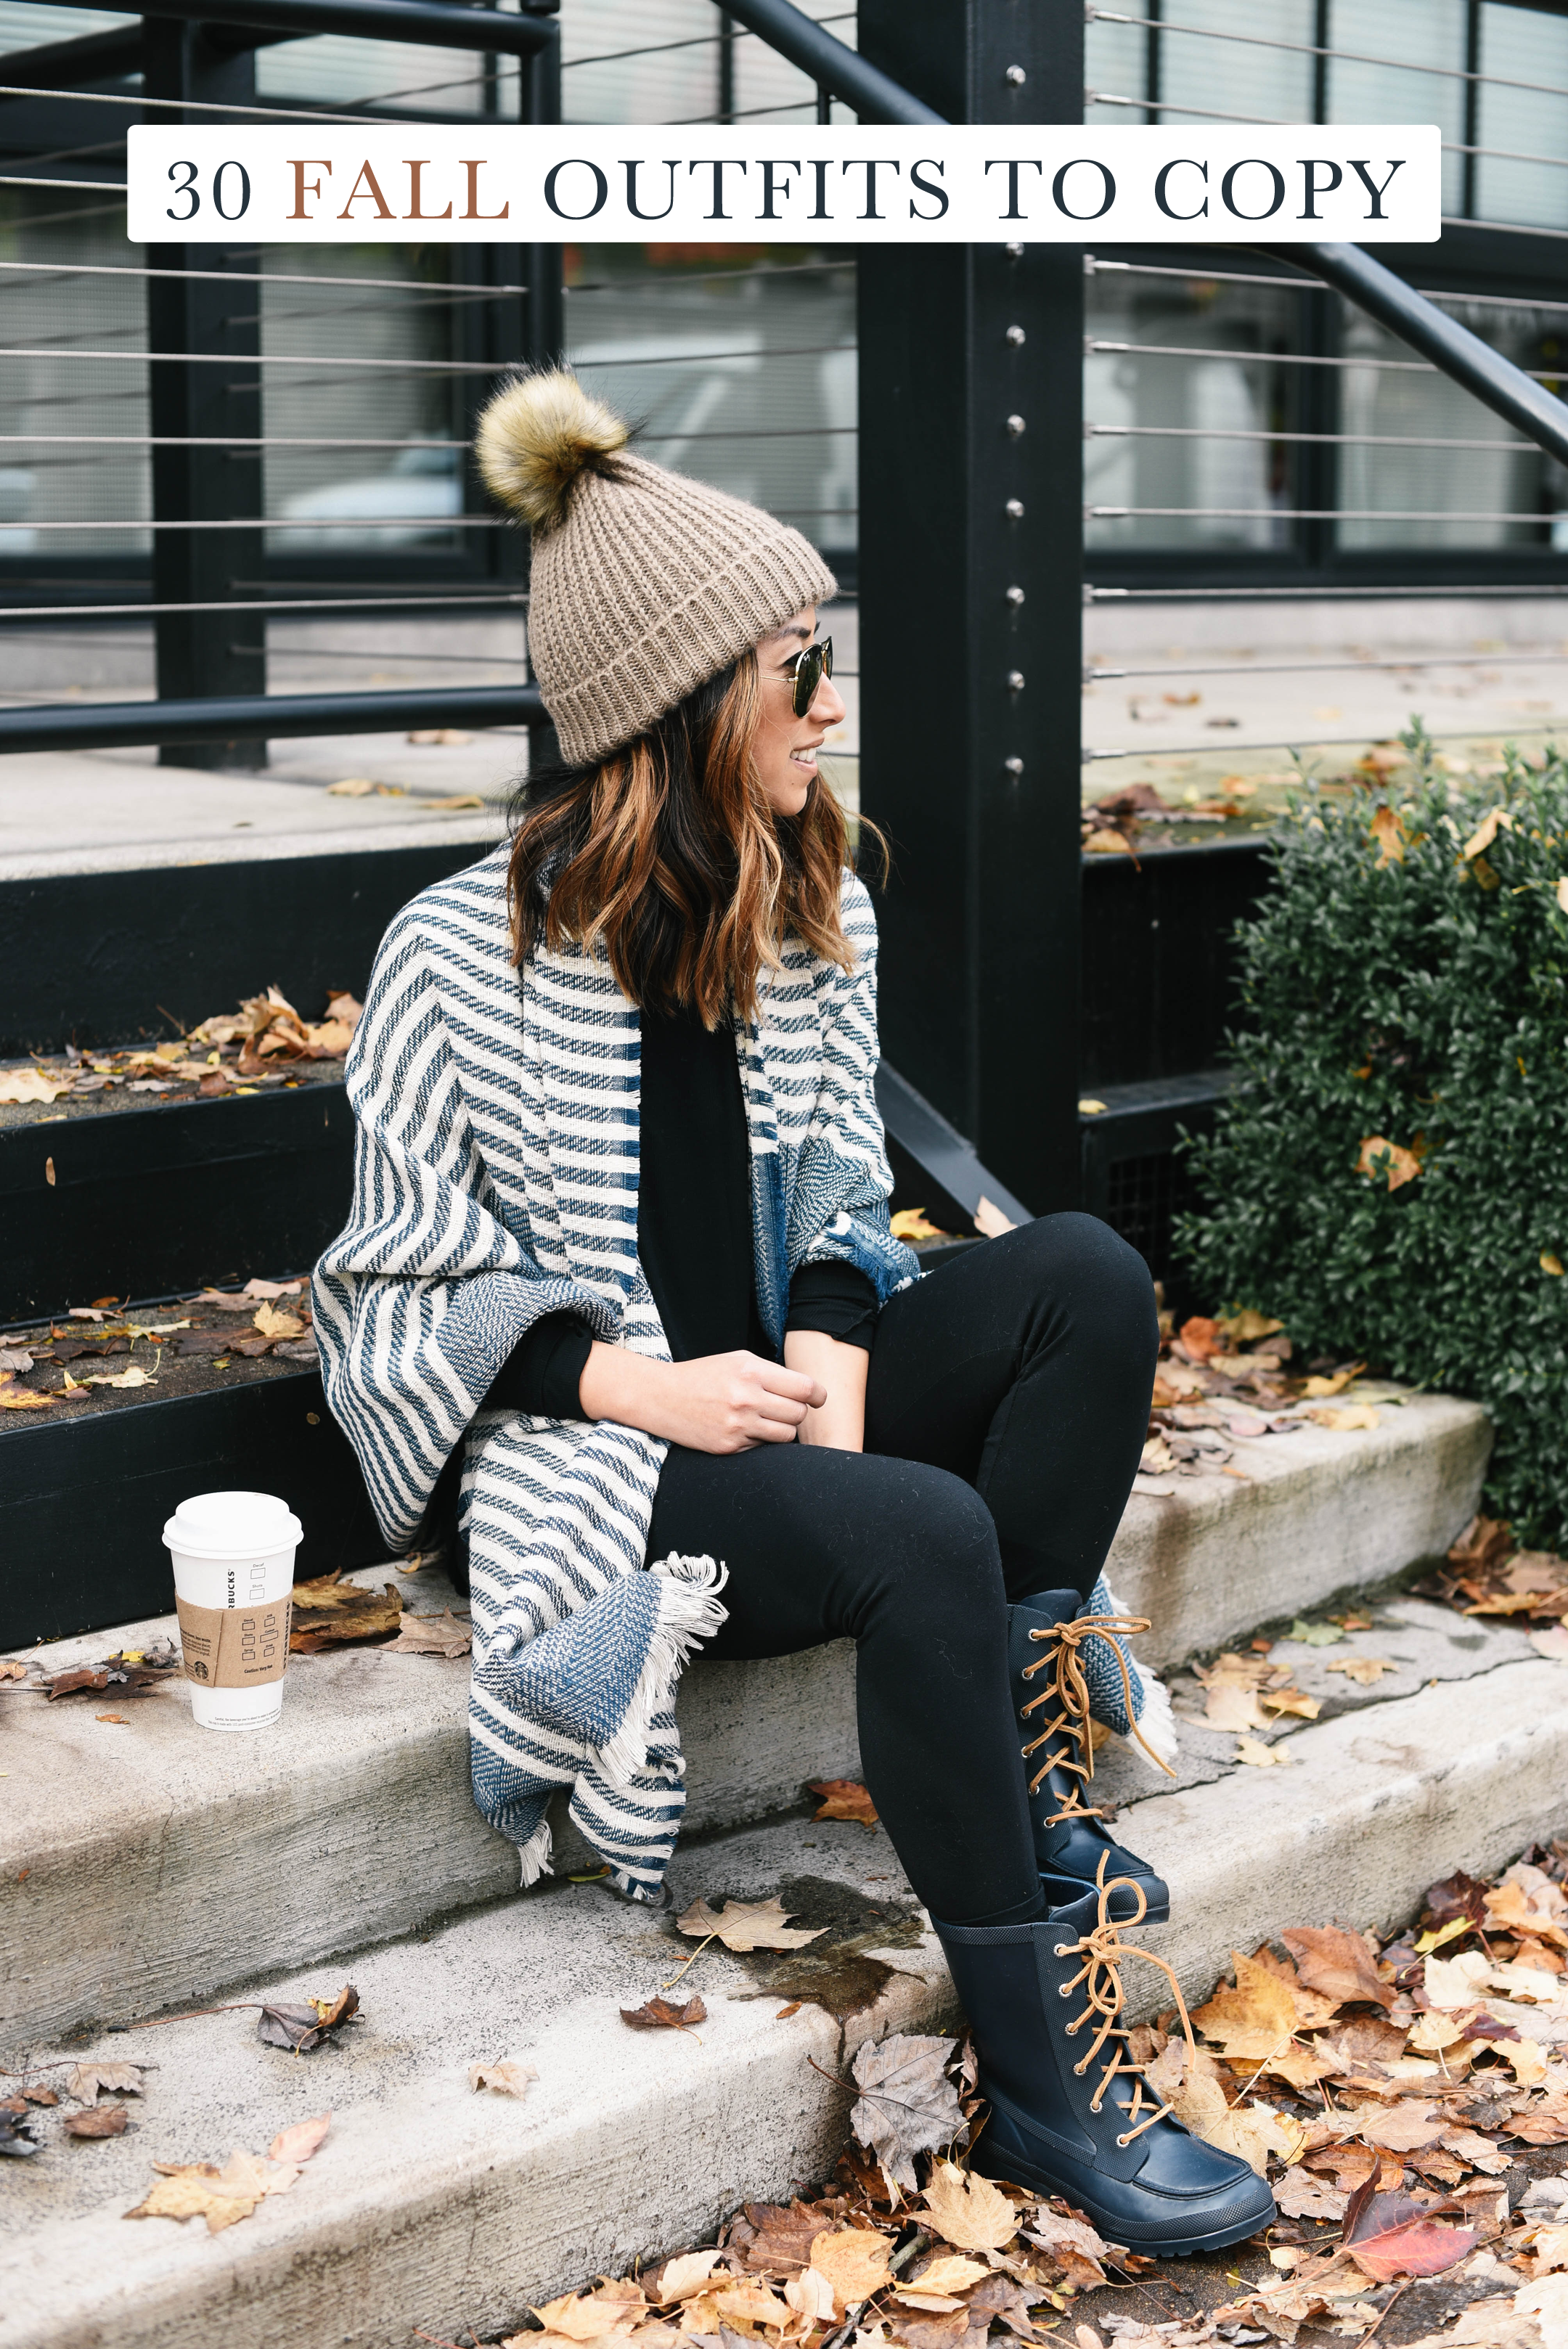 30 fall outfit ideas to copy 2